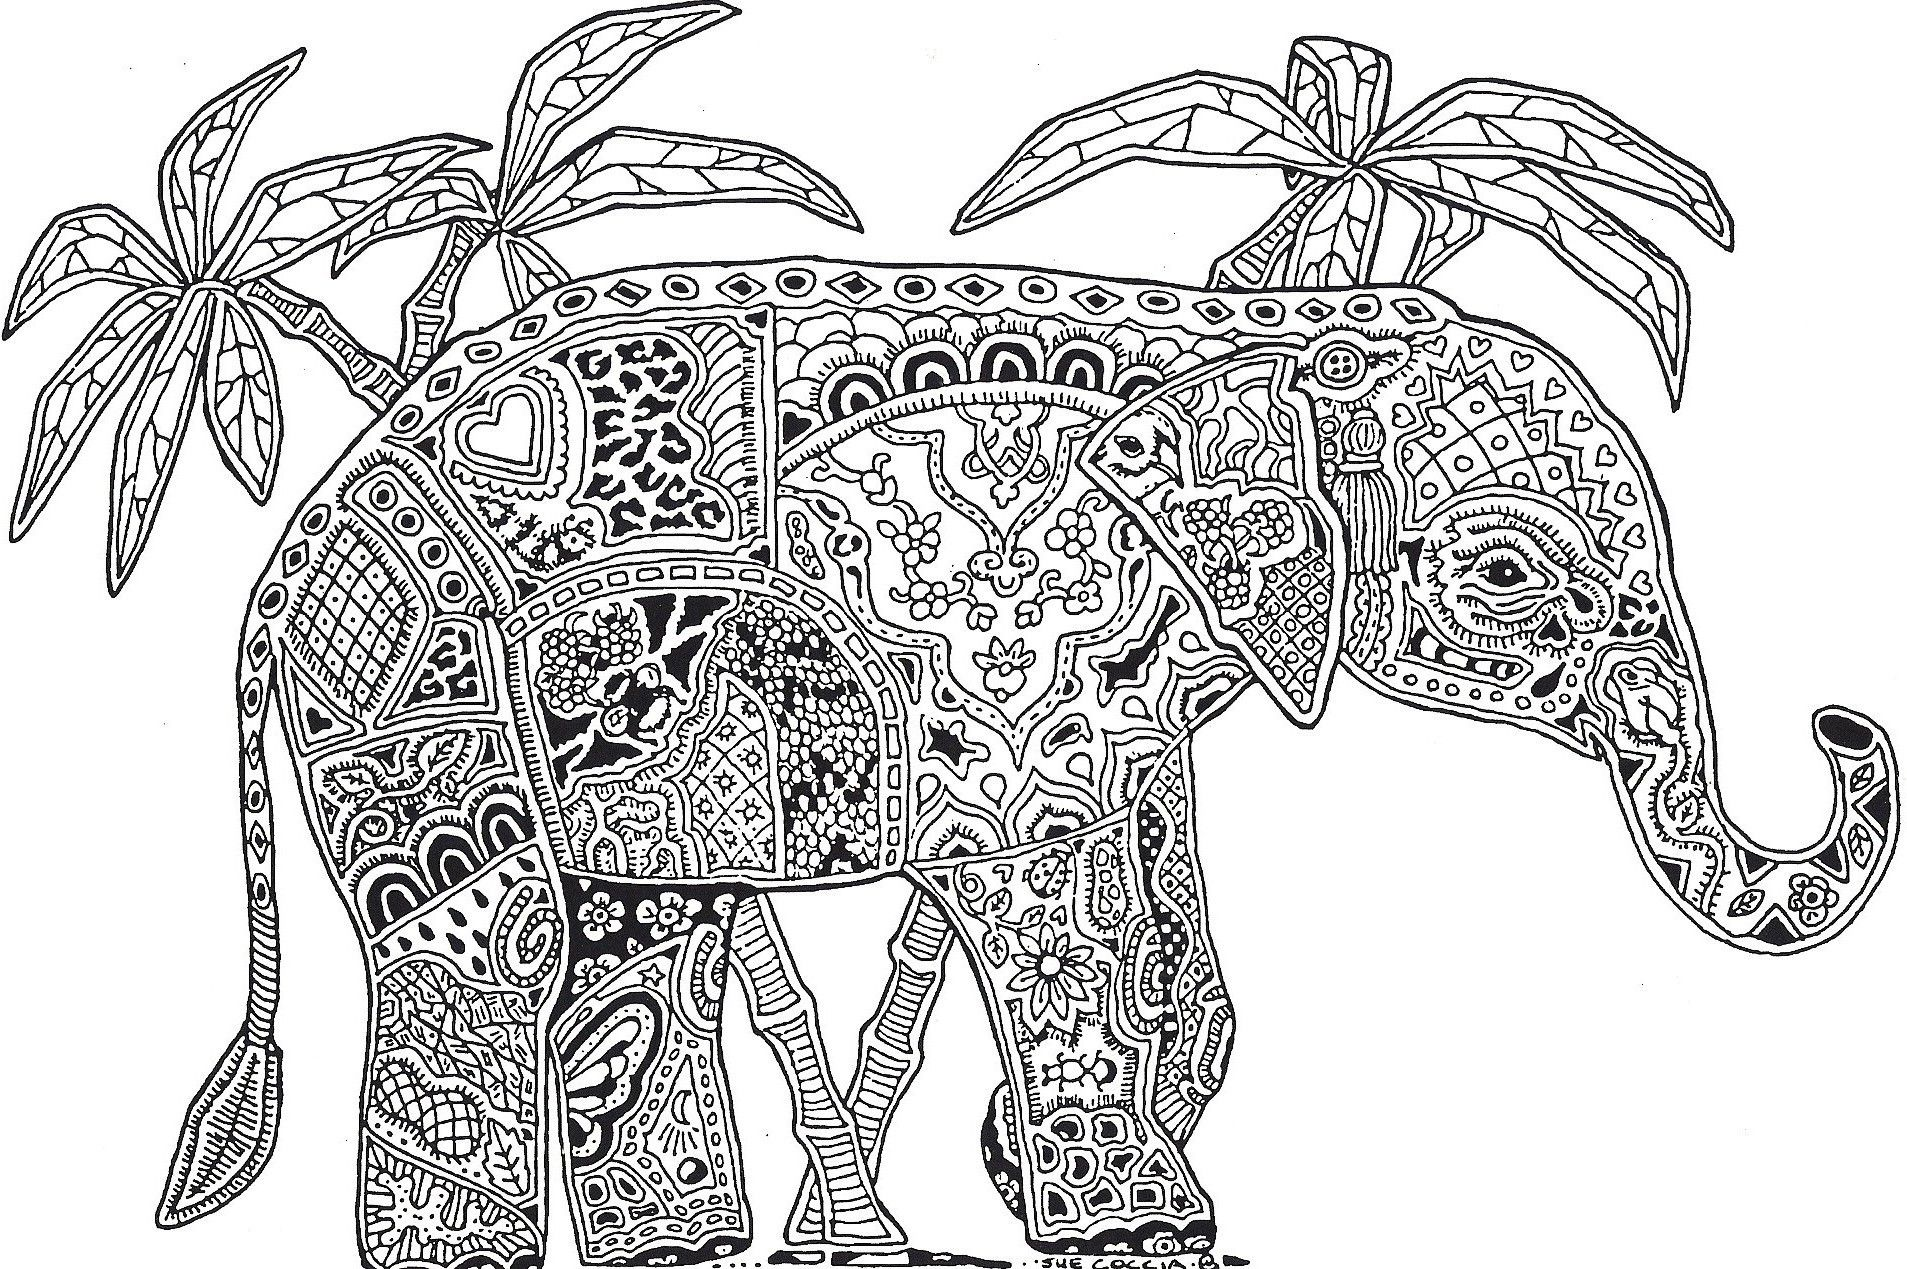 challenging coloring pages – buswellshotel.com